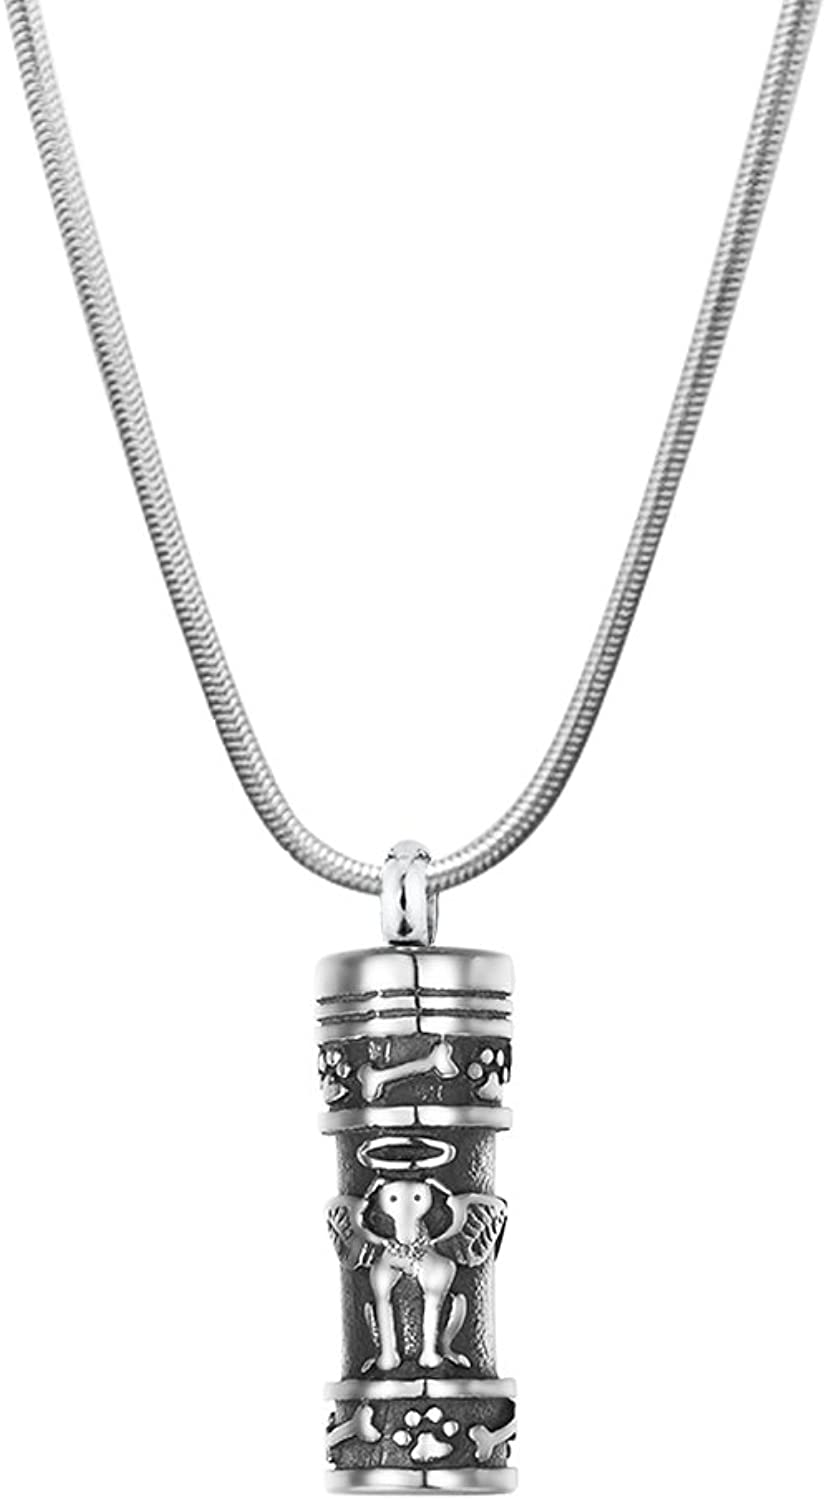 Anavia Pets Dog Bone Round Paw Print Tear Drop Cylinder Charm Cremation Keepsake Memorial Surgical Stainless Steel 316L Pendant Necklace (Dog Guardian Angel Cylinder)